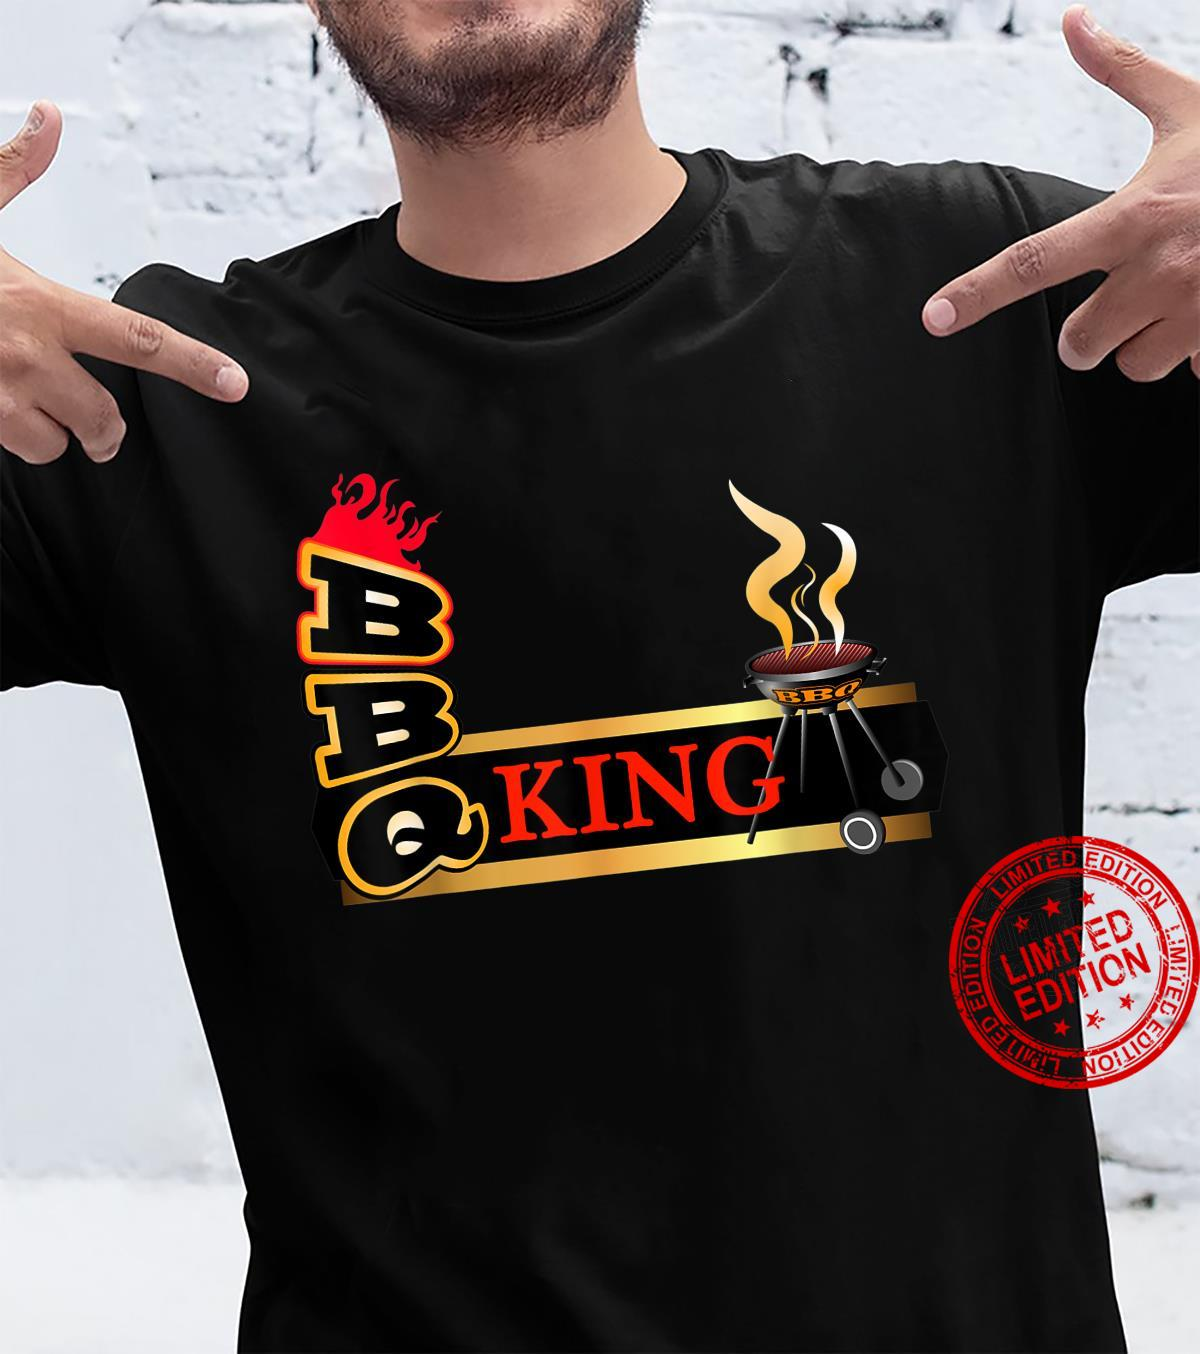 BARBECUE KING, HOT & SPICY SAUCE Shirt